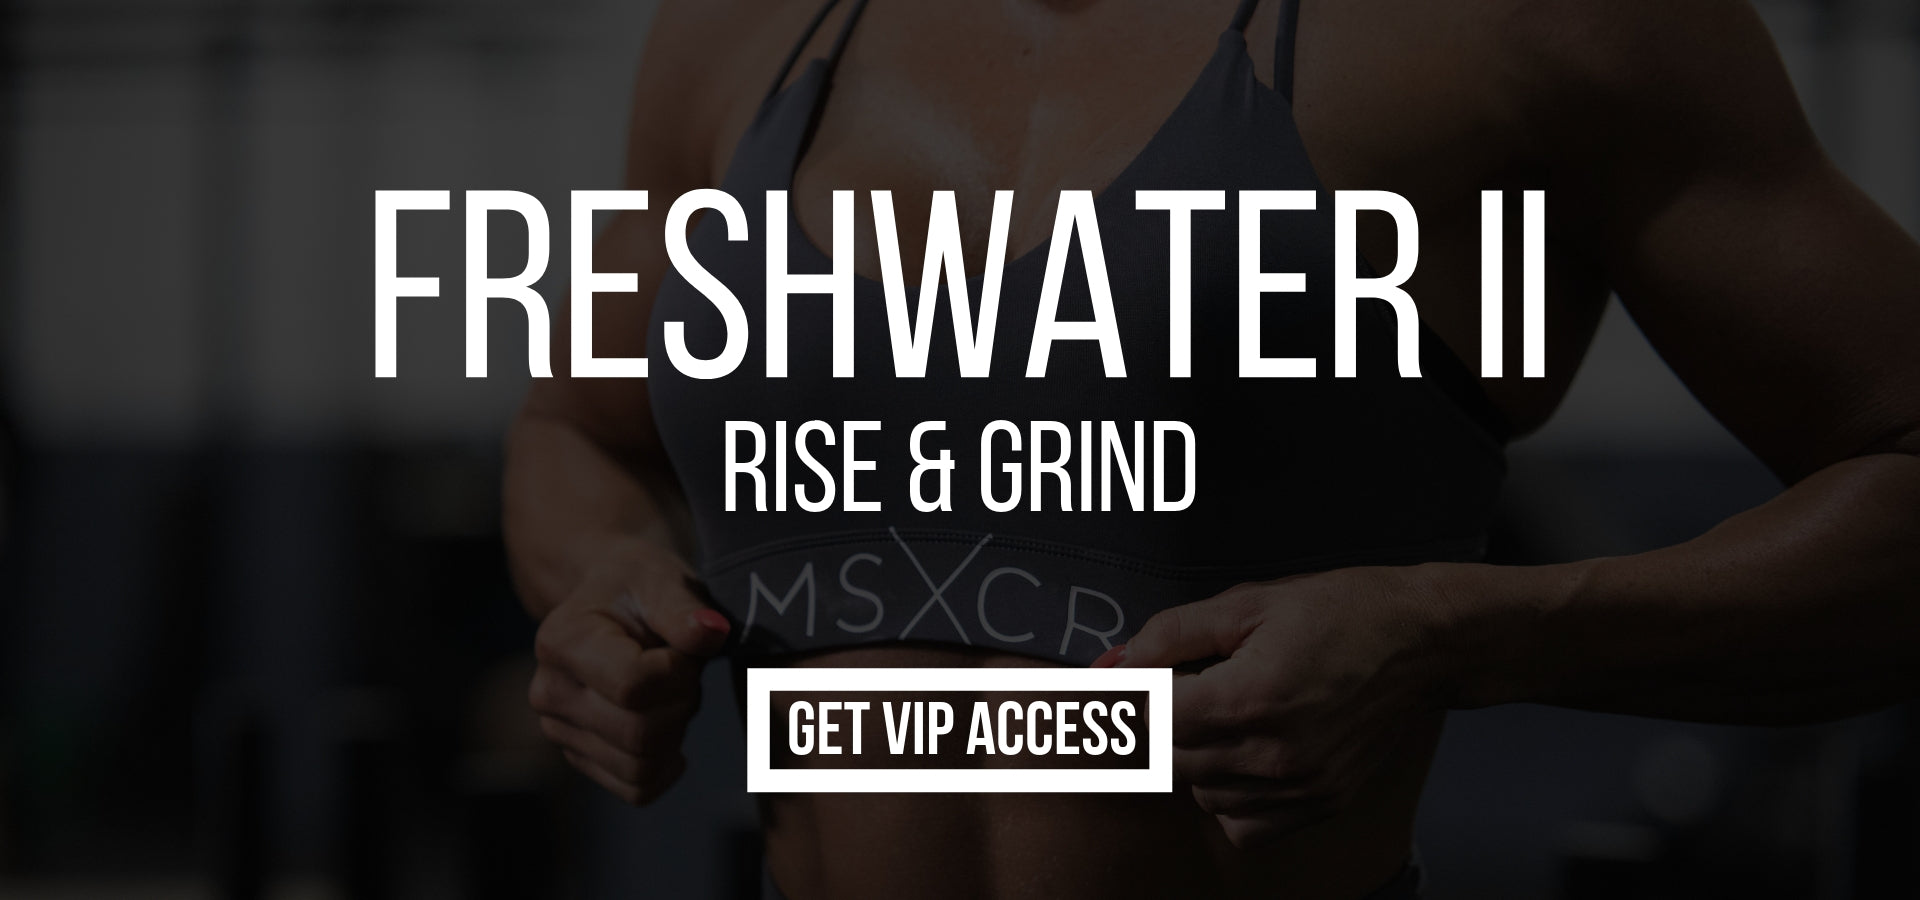 Freshwater II VIP Sign Up